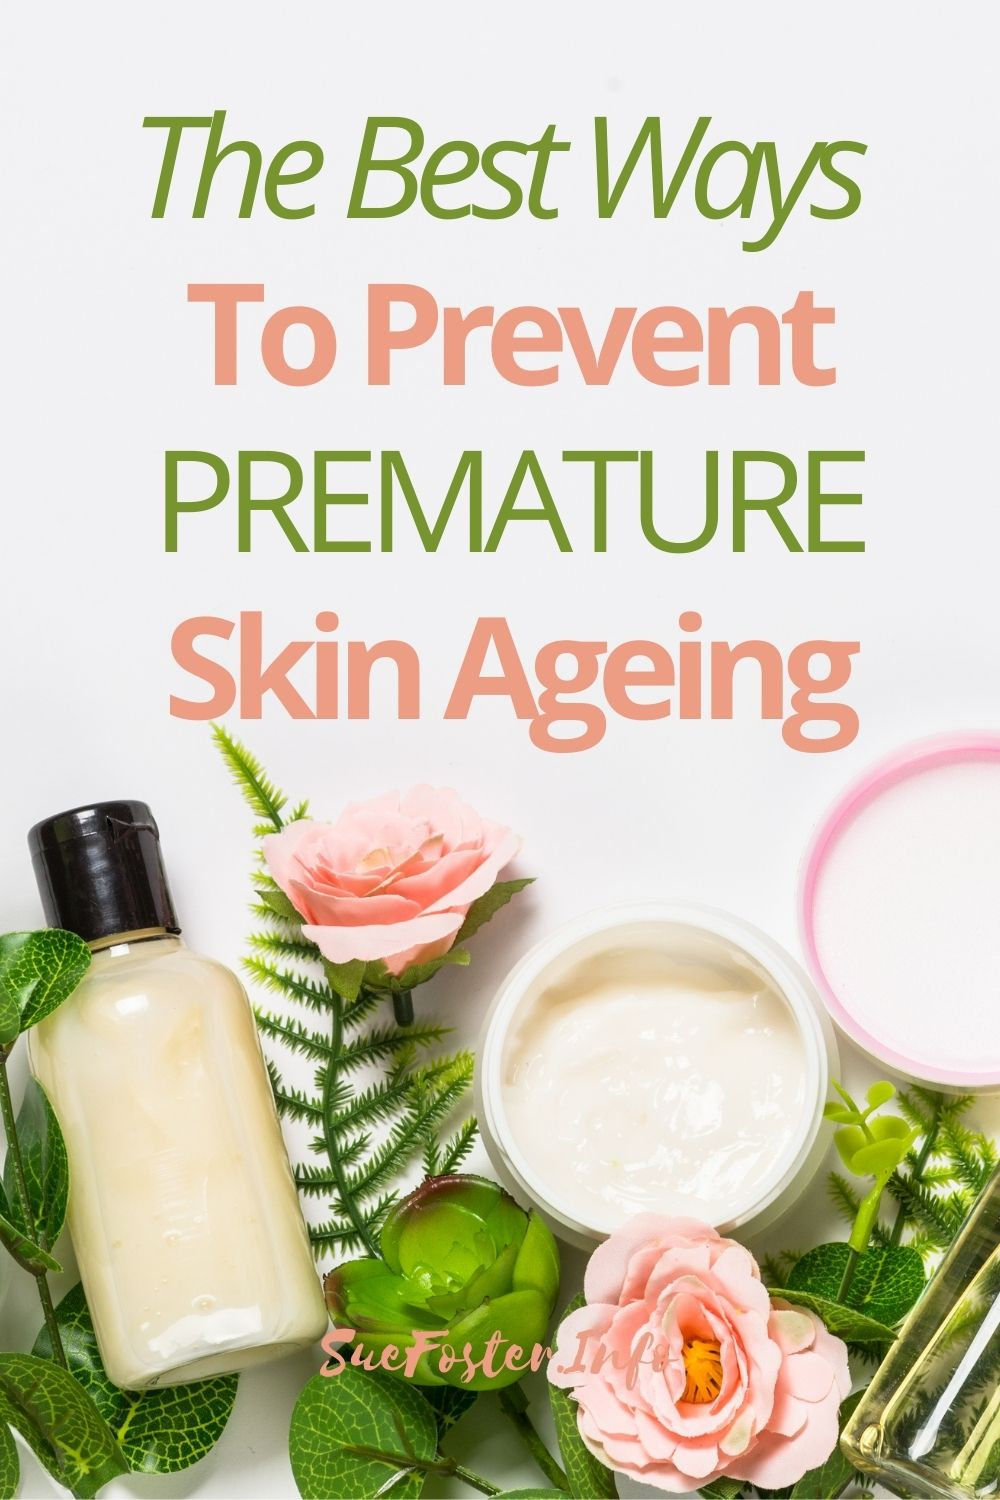 Follow these tips to prevent premature skin ageing.